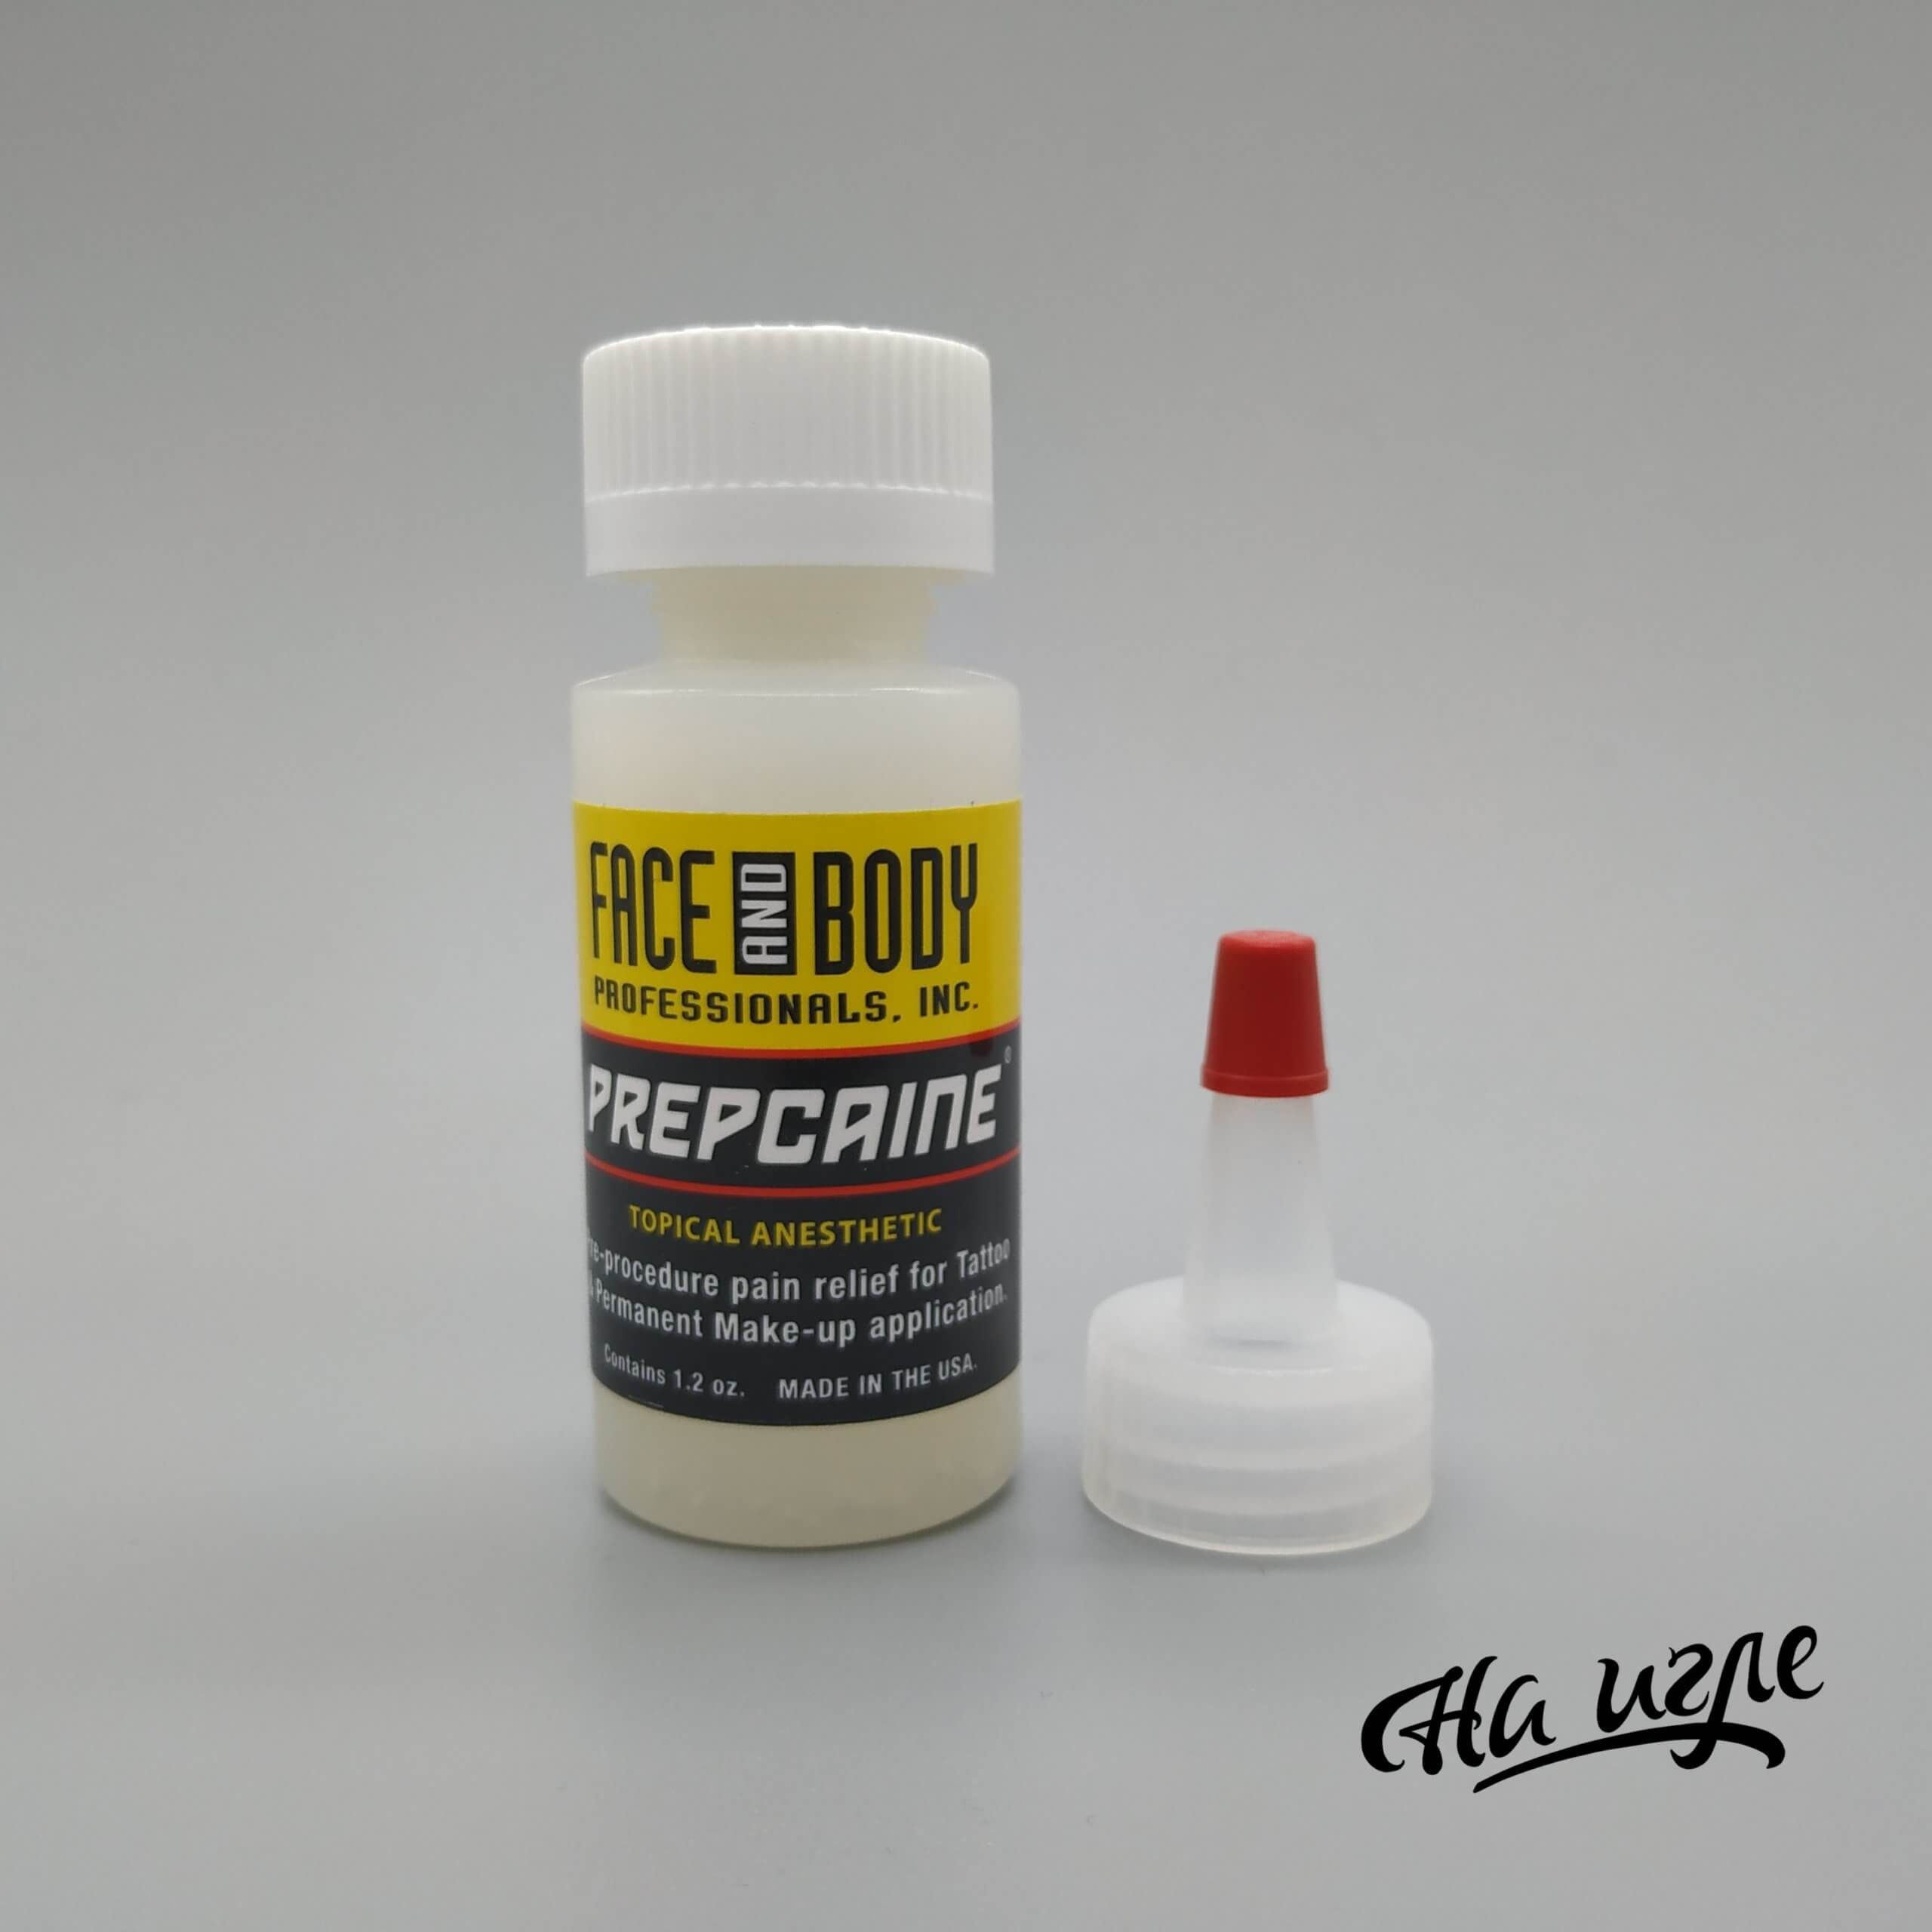 PREPCAINE by Face and Body